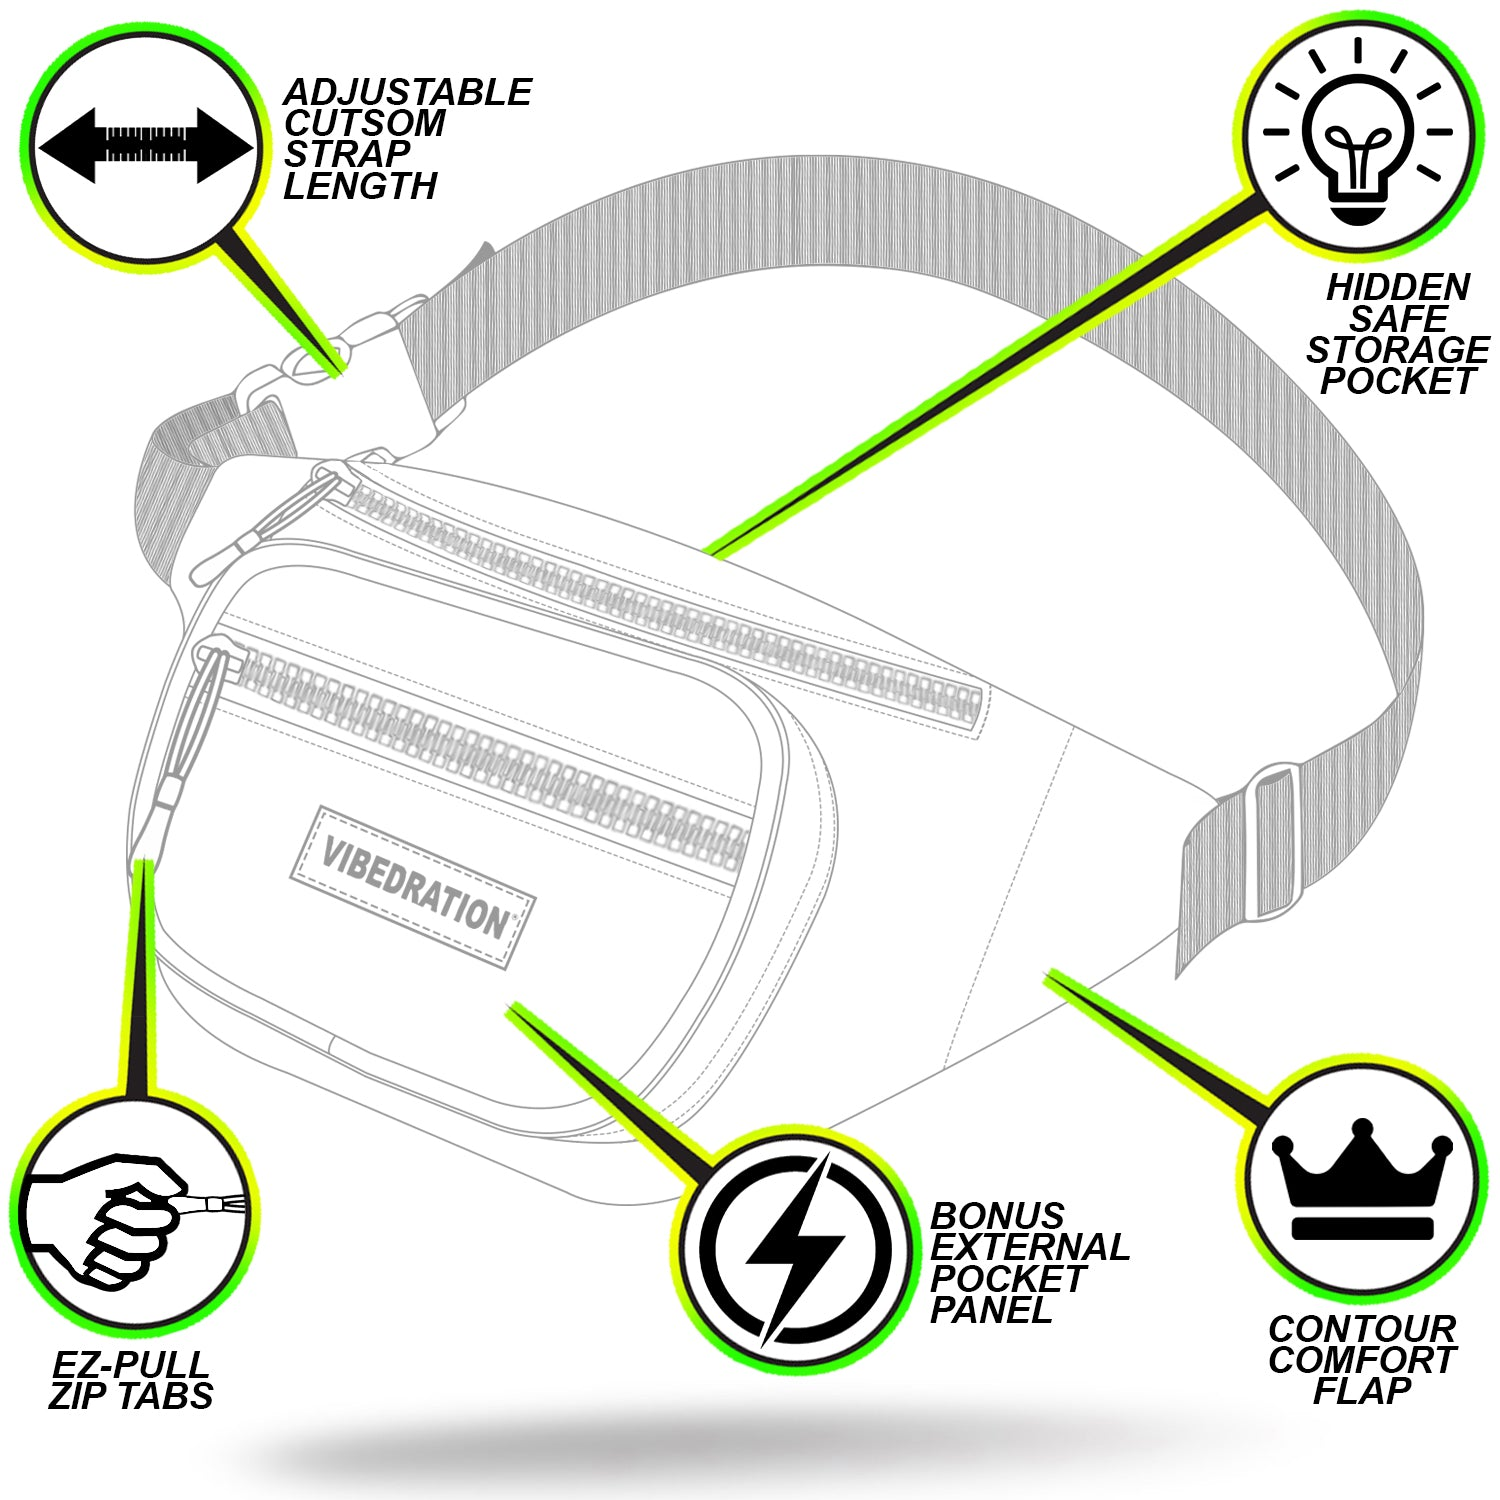 Shiny adjustable fanny pack